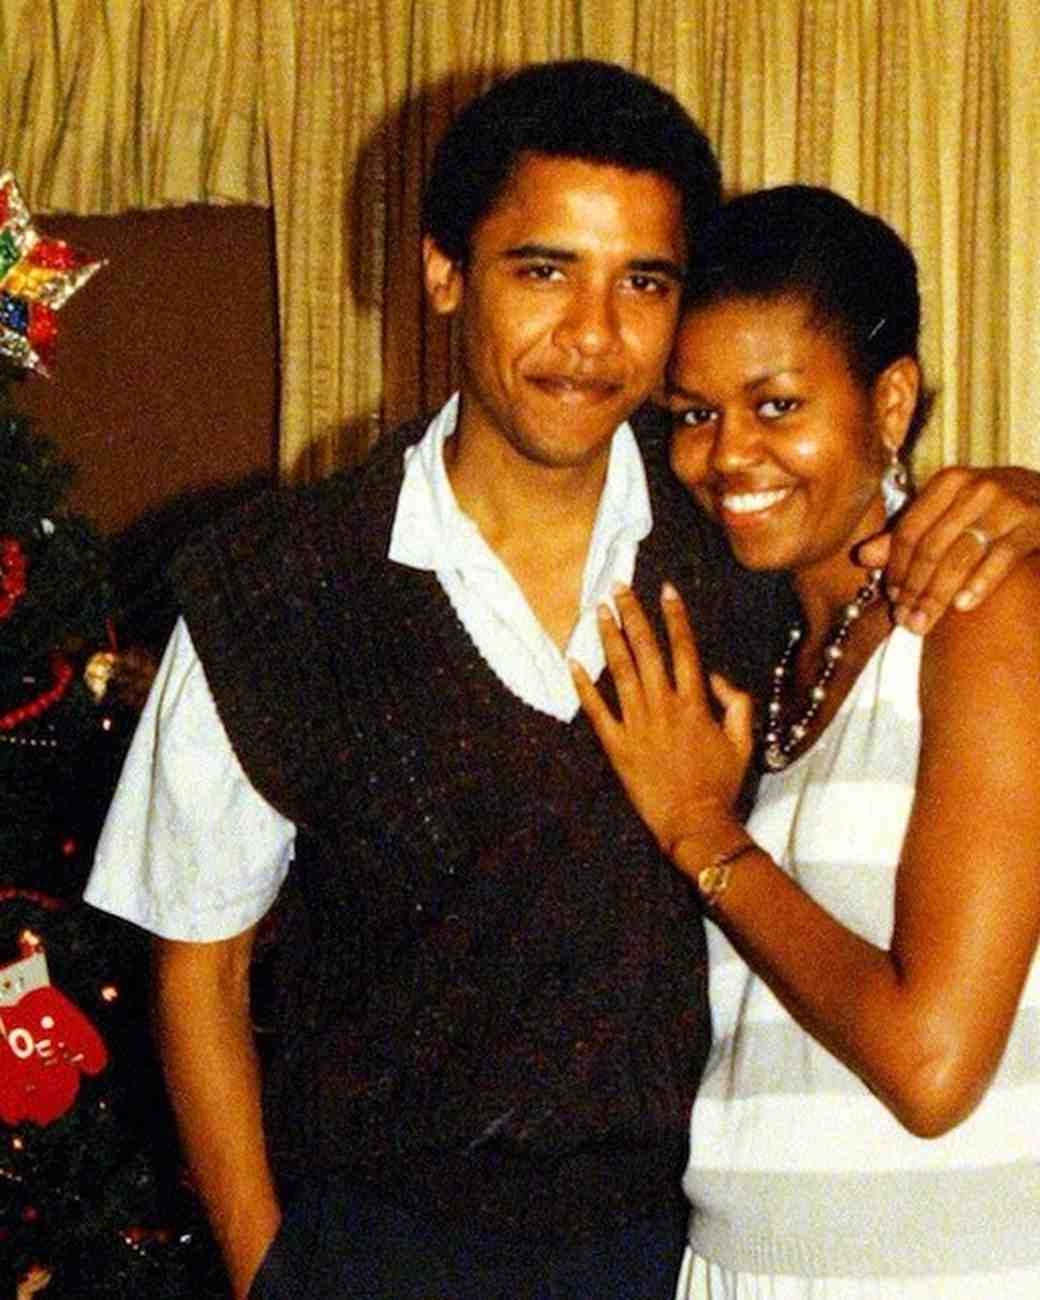 Michelle and Barack Obama Christmas Throwback